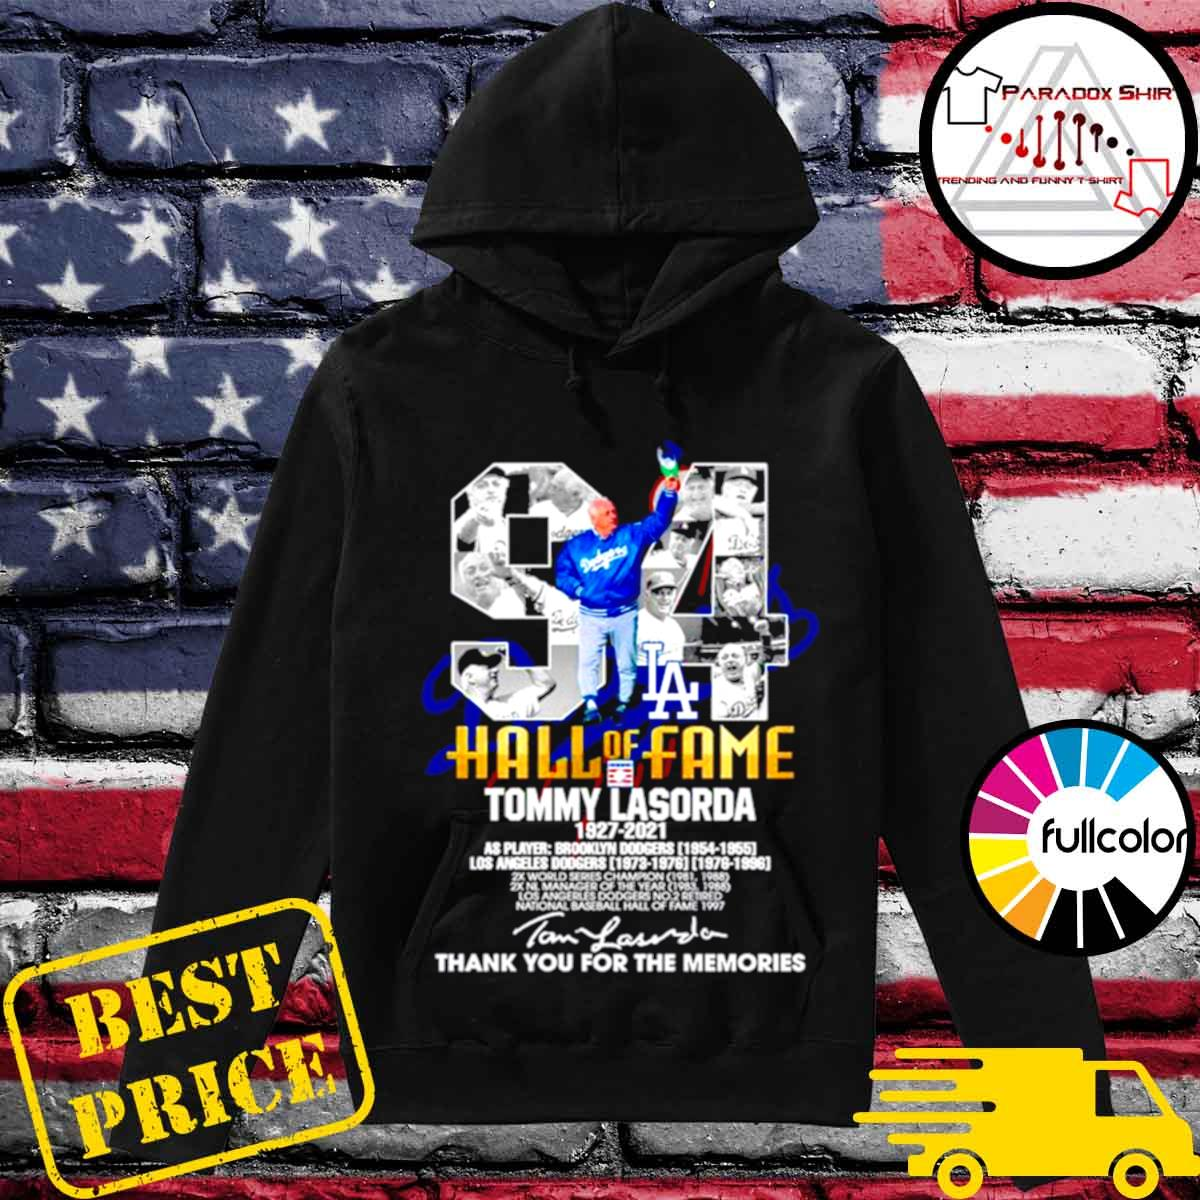 94 Hall of Fame Tommy Lasorda 1927 2021 thank you for the memories signature s Hoodie